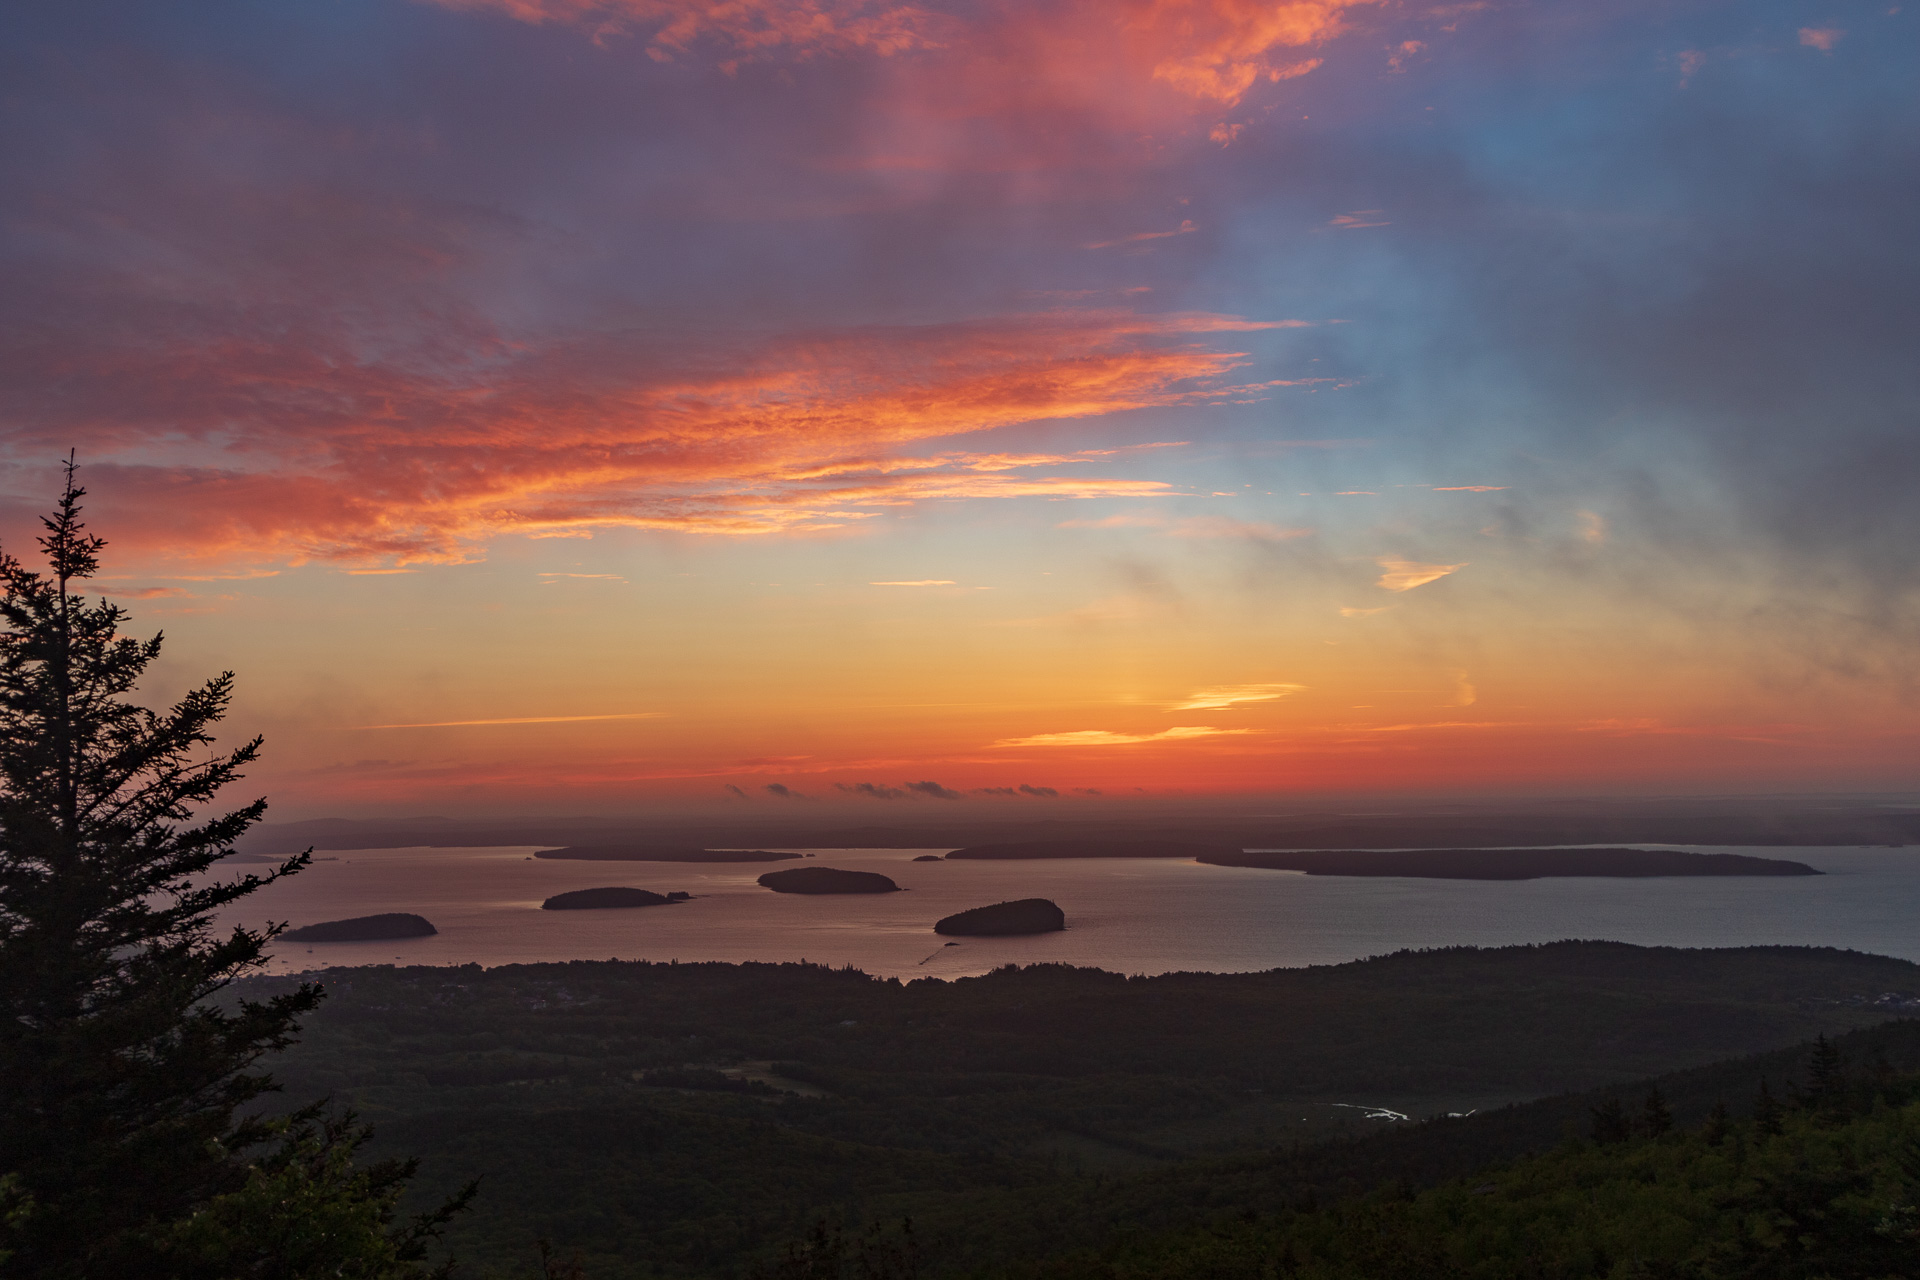 Sunrise up on Cadillac Mountain in Acadia National Park.  We tried going to the summit for sunrise but it was heavily blanketed in fog.  We came down a portion of the way and took shots as the fog rolled in.